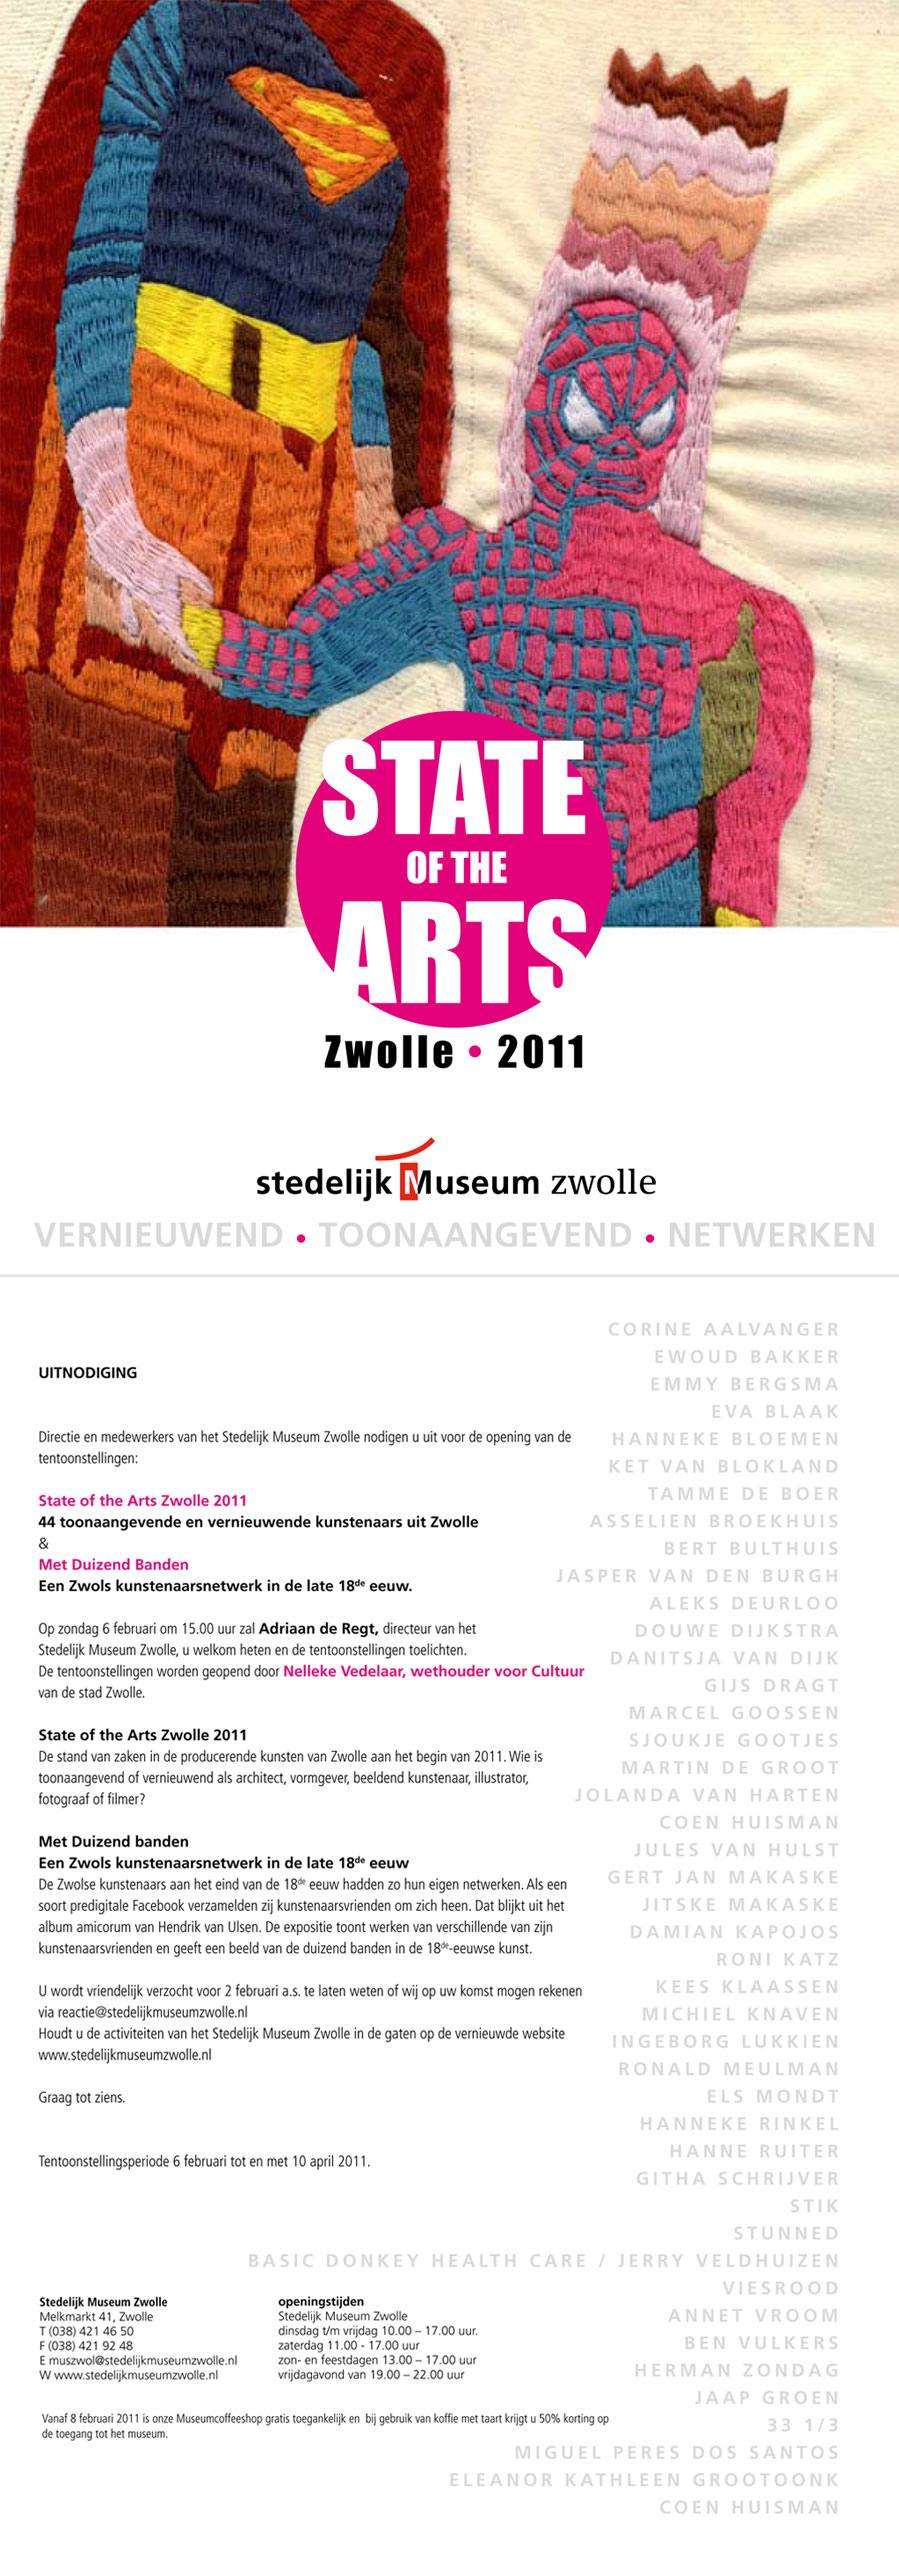 State of the Arts Zwolle 2011